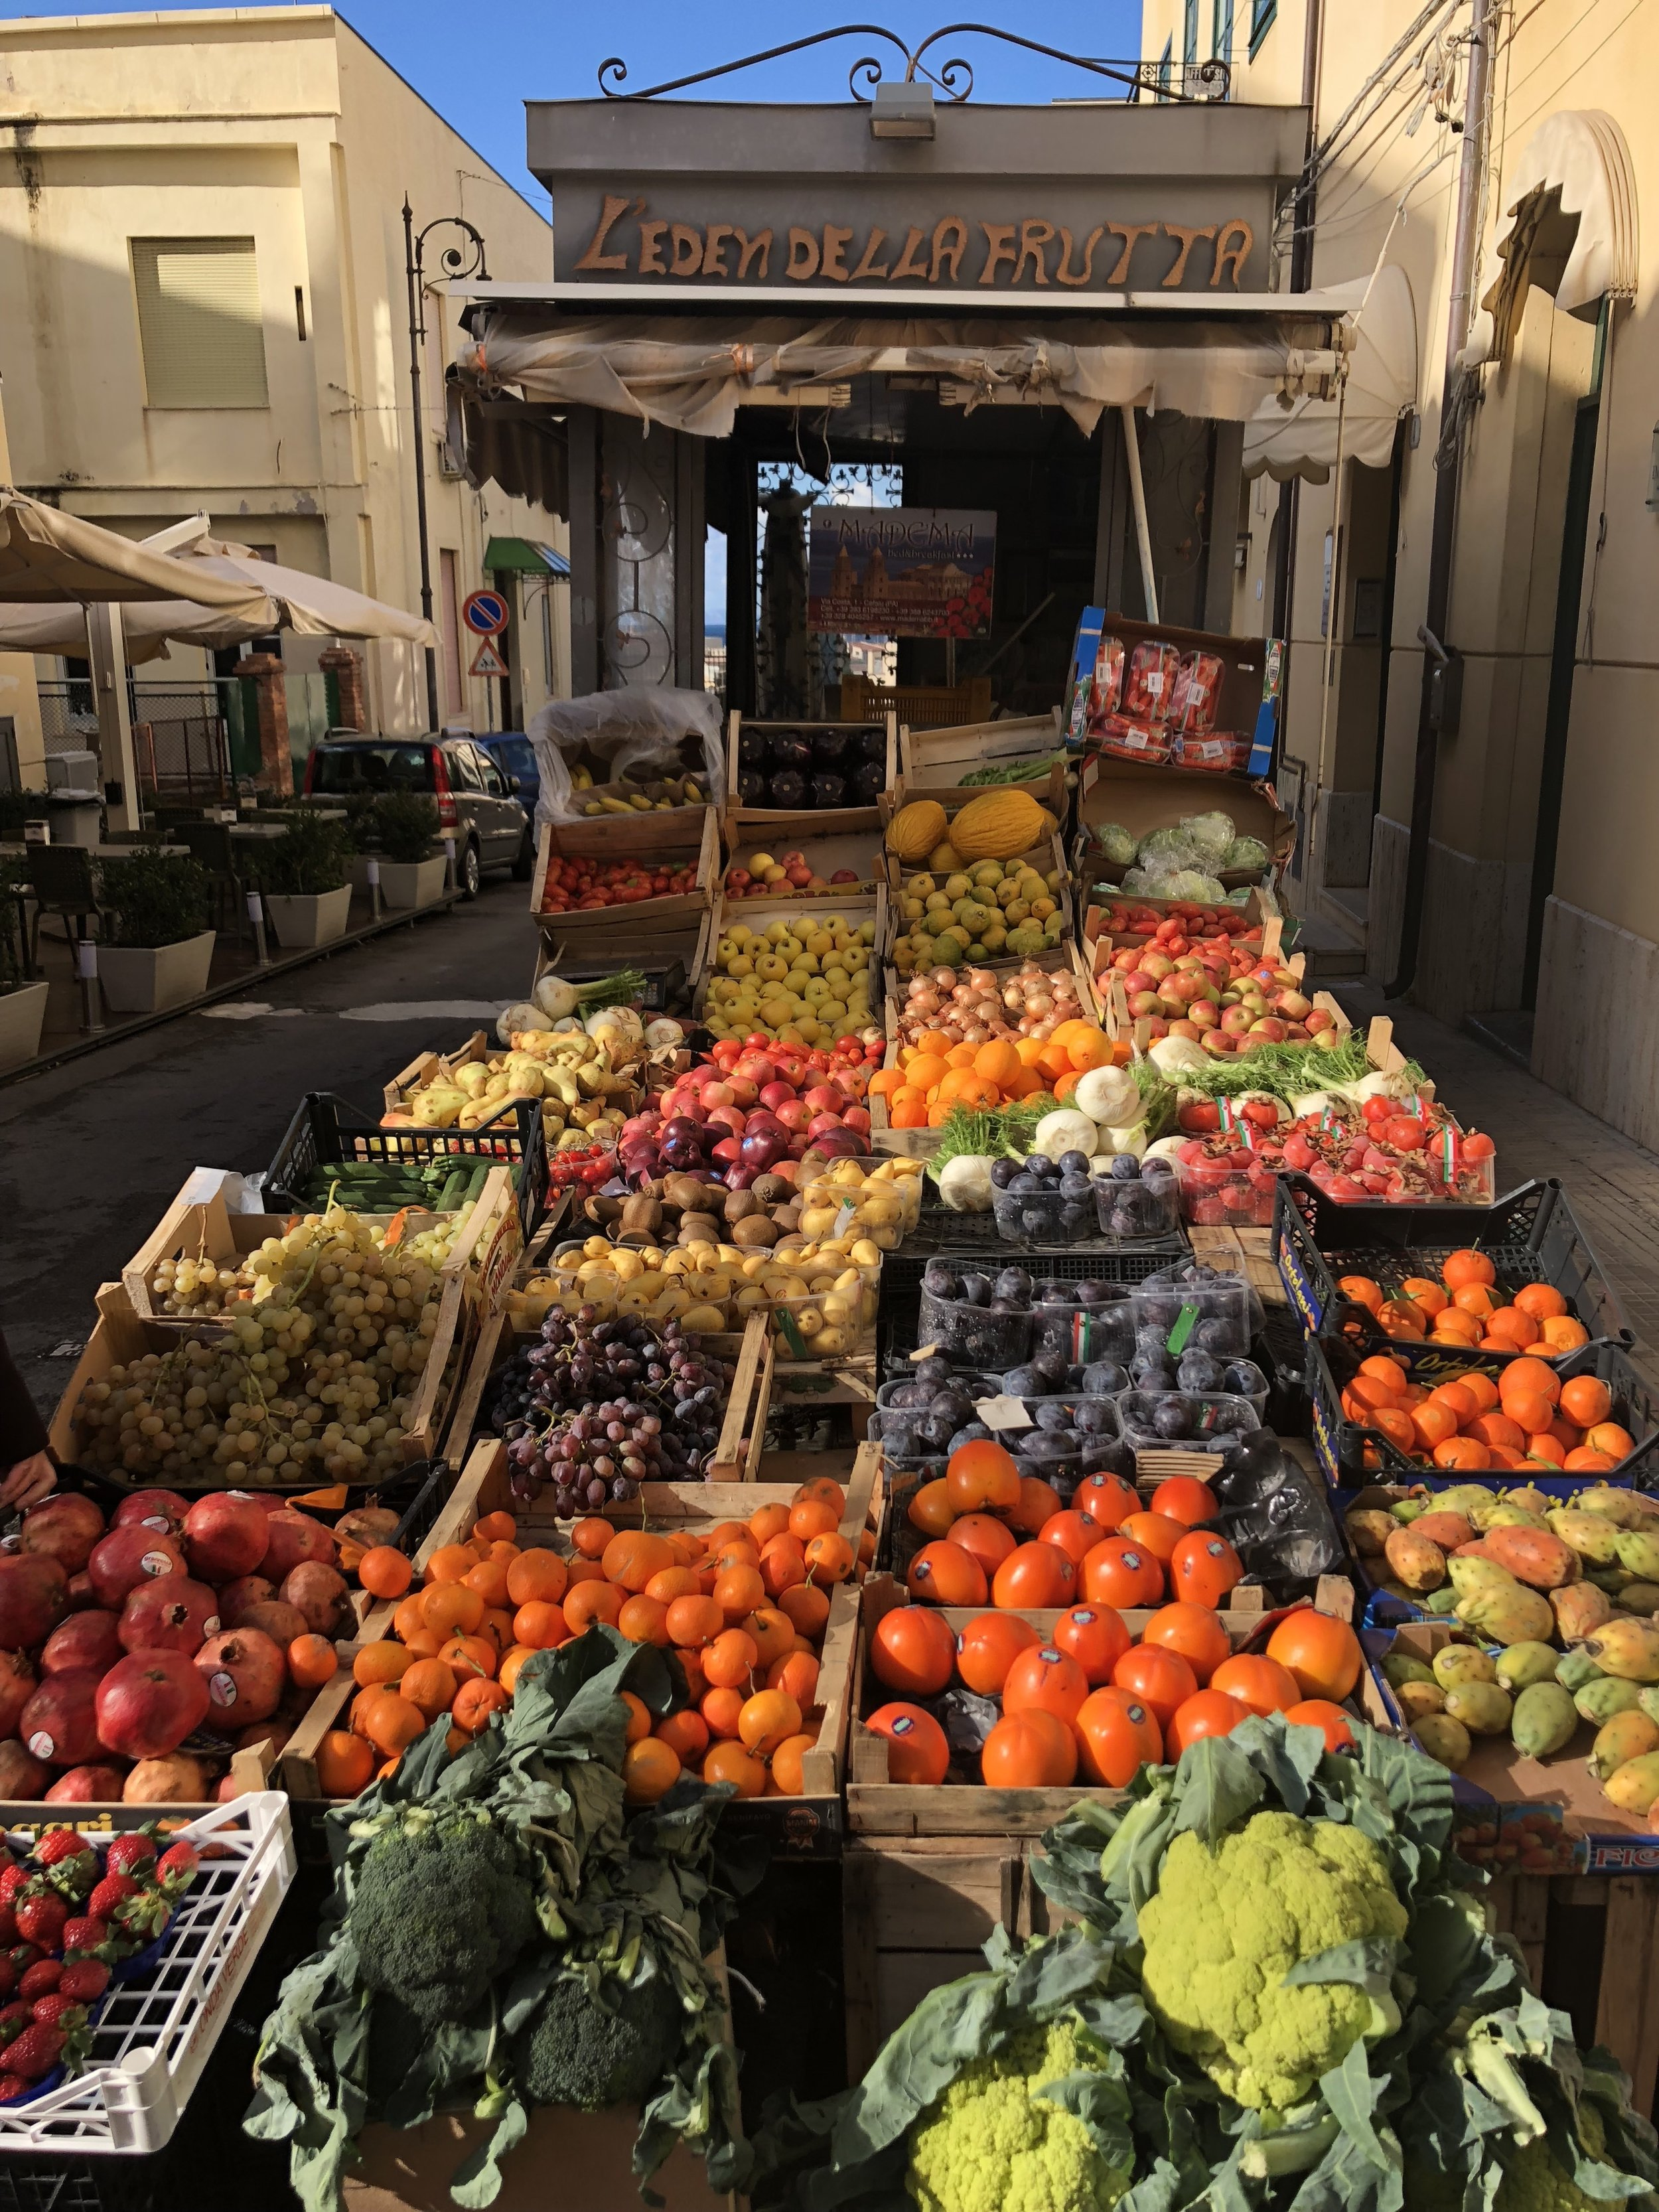 Fruit and vegetable stand in Cefalu.